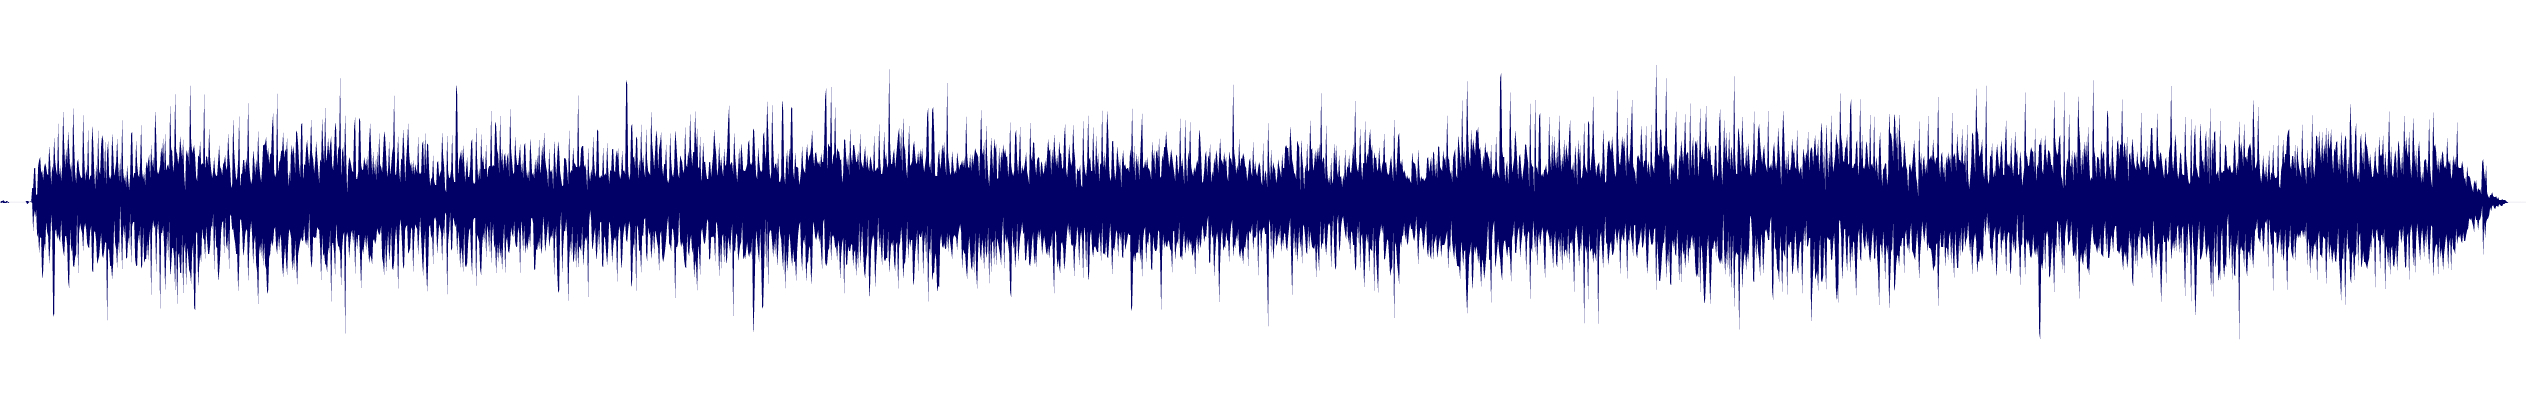 waveform of track #103493